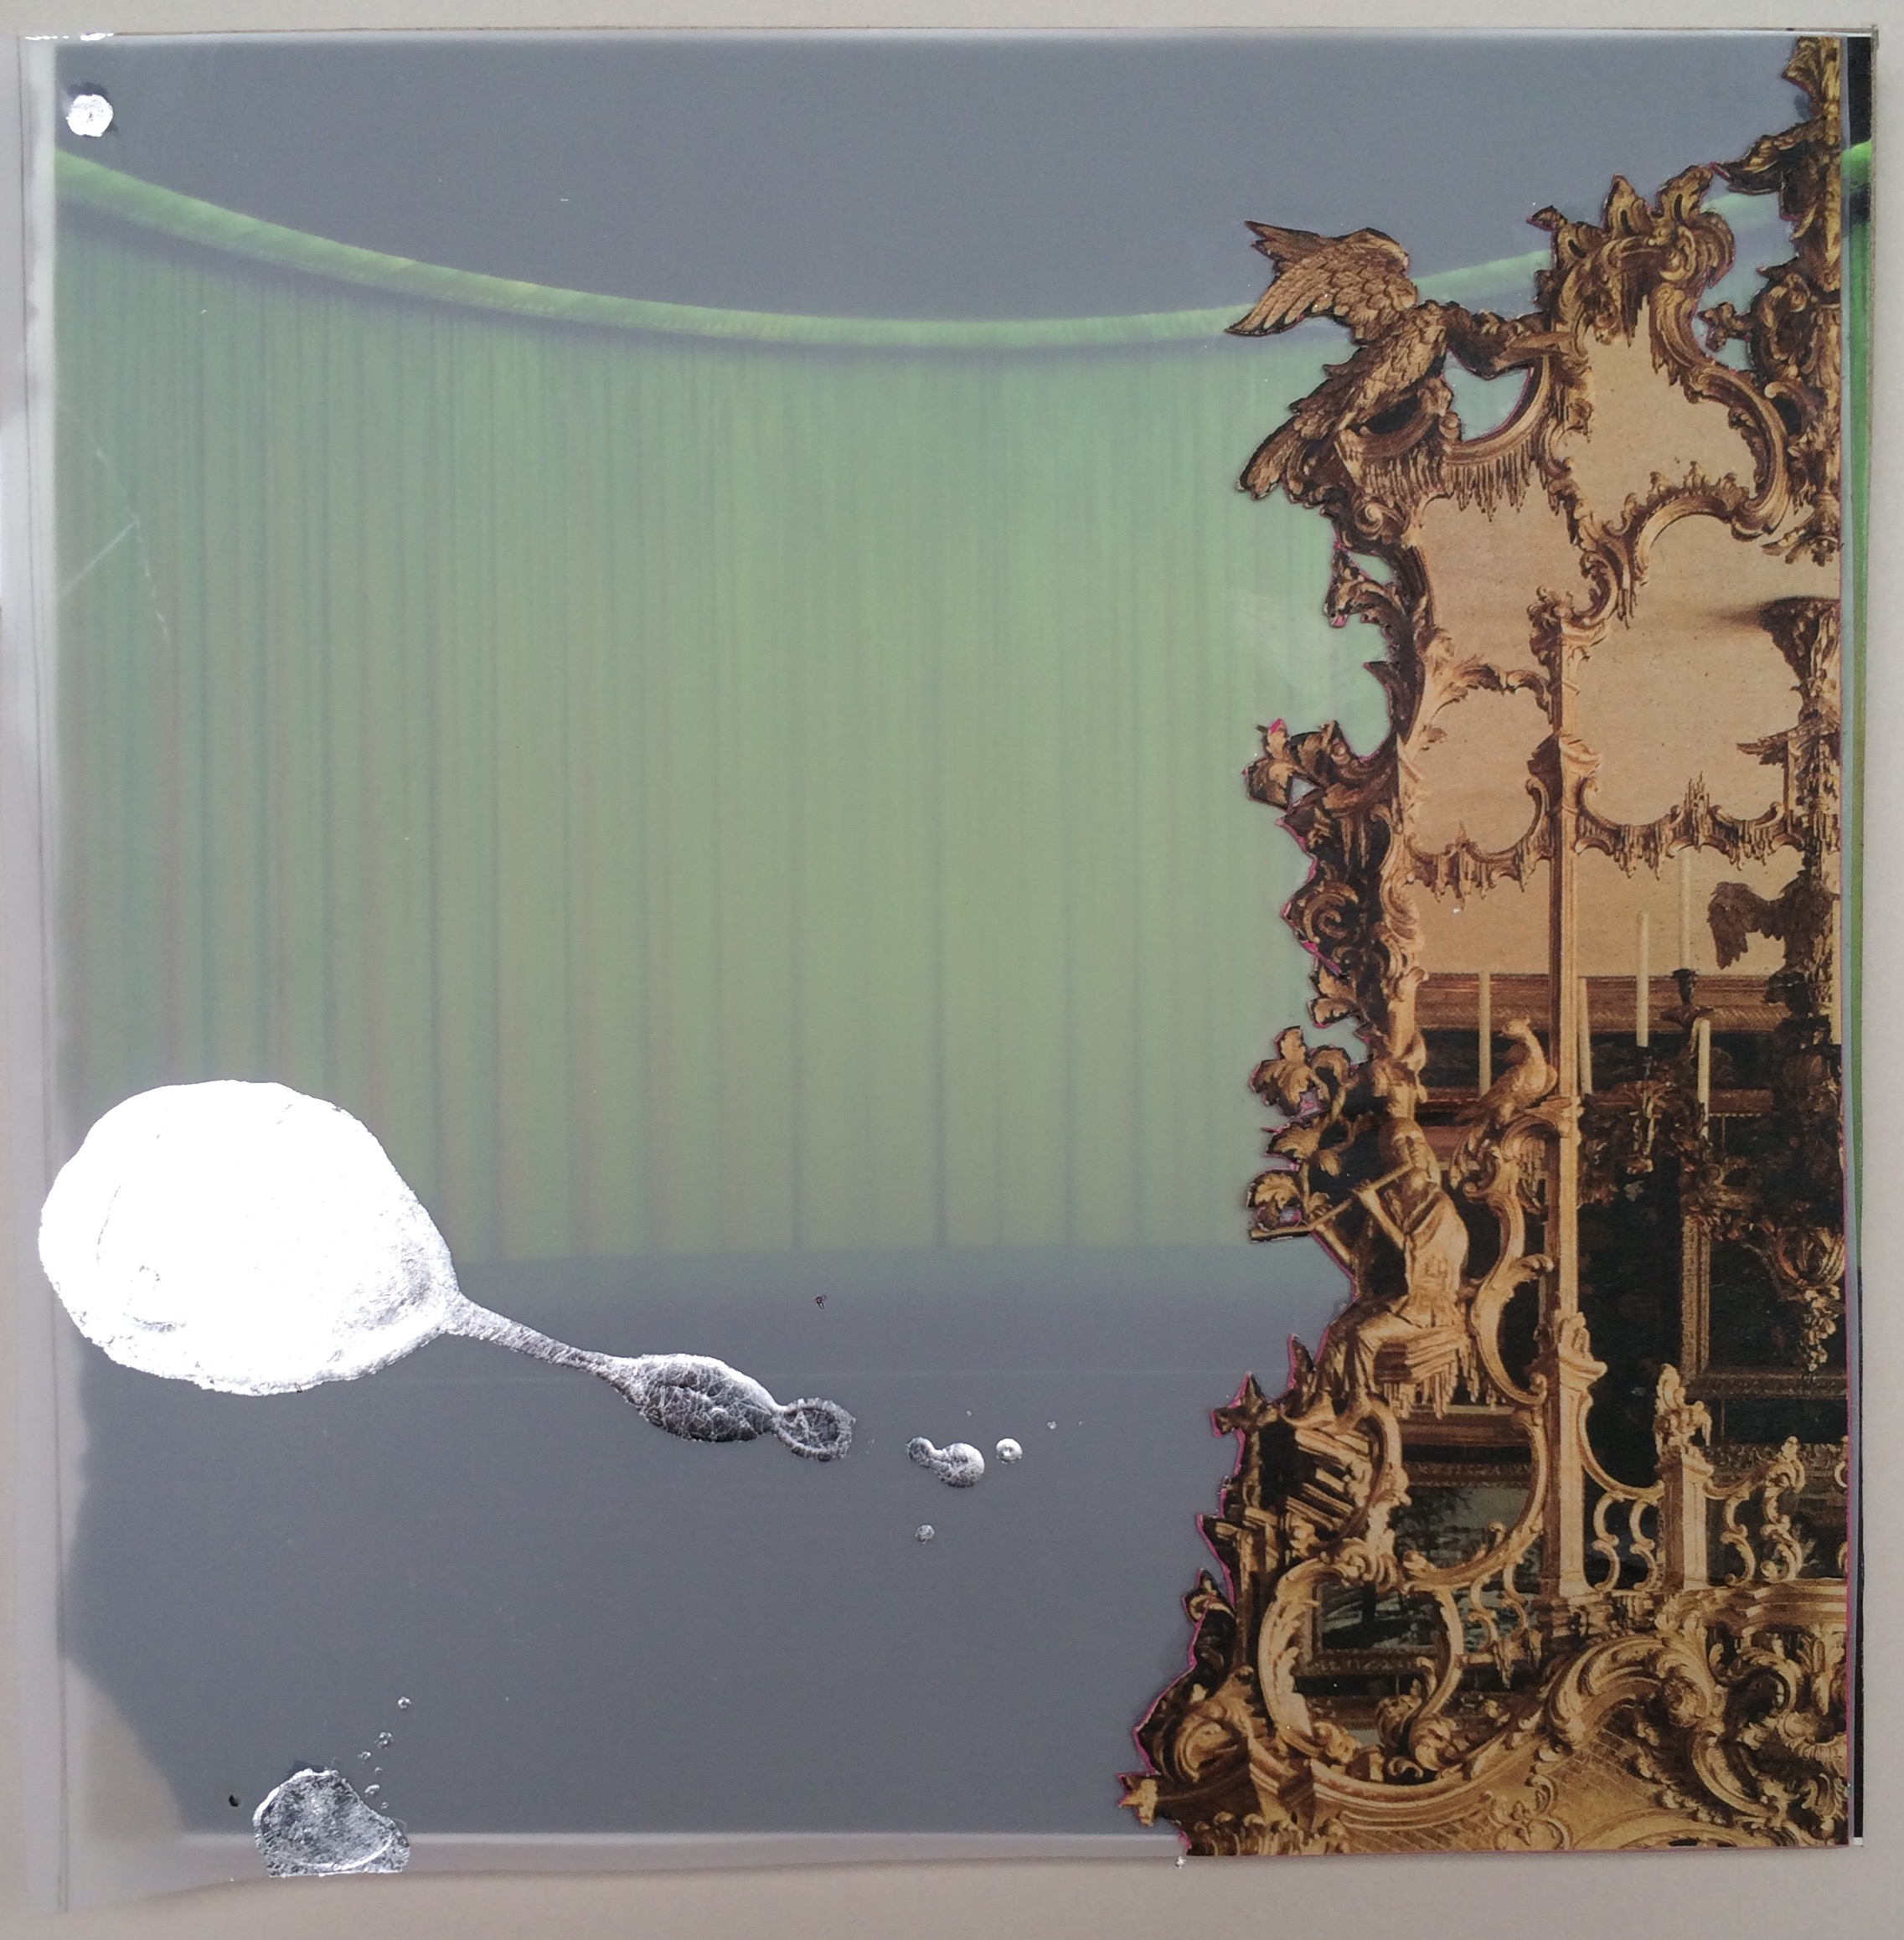 Stage of Place, 2015, hand-cut collage and latex on mylar, 8″x8″